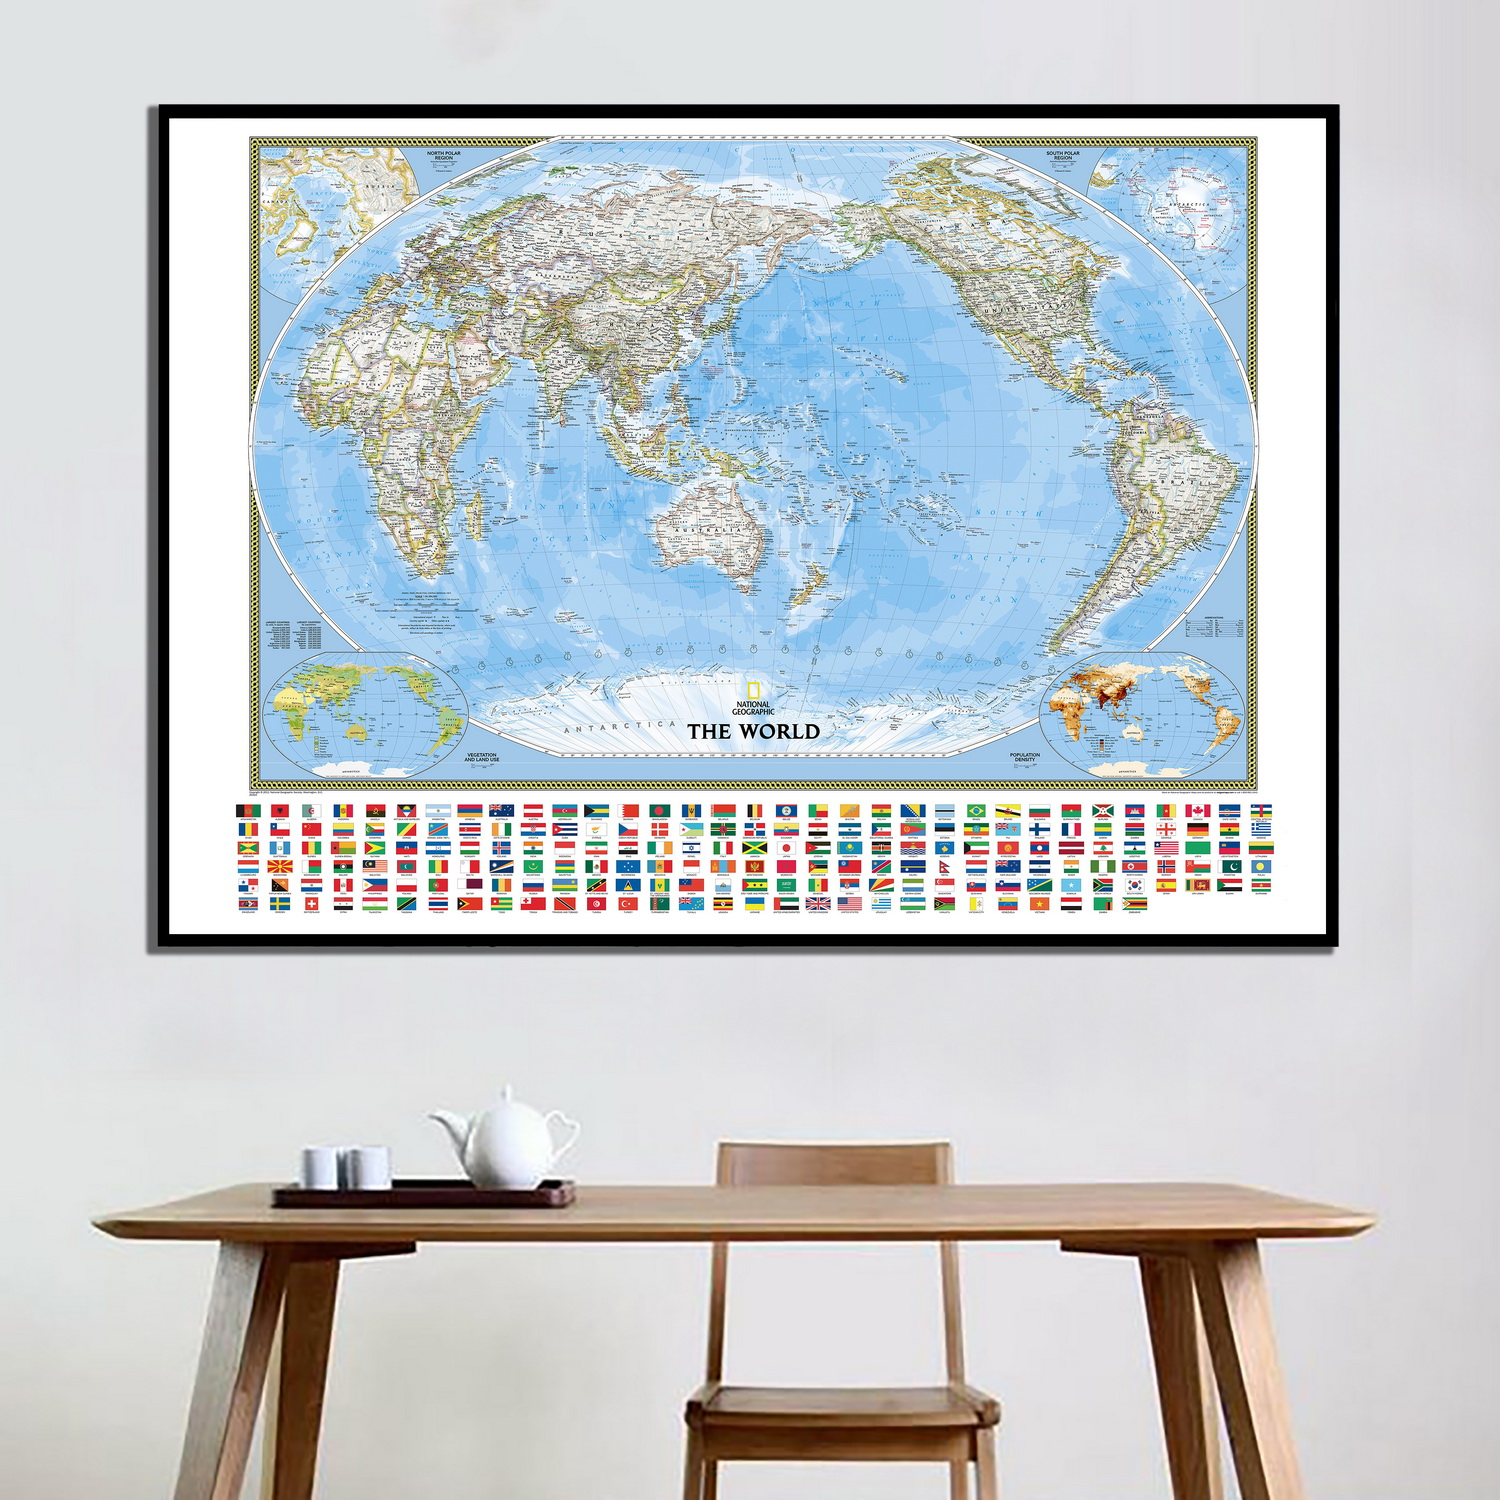 59 X 39 World Political Pacific Centered Wall Map Poster